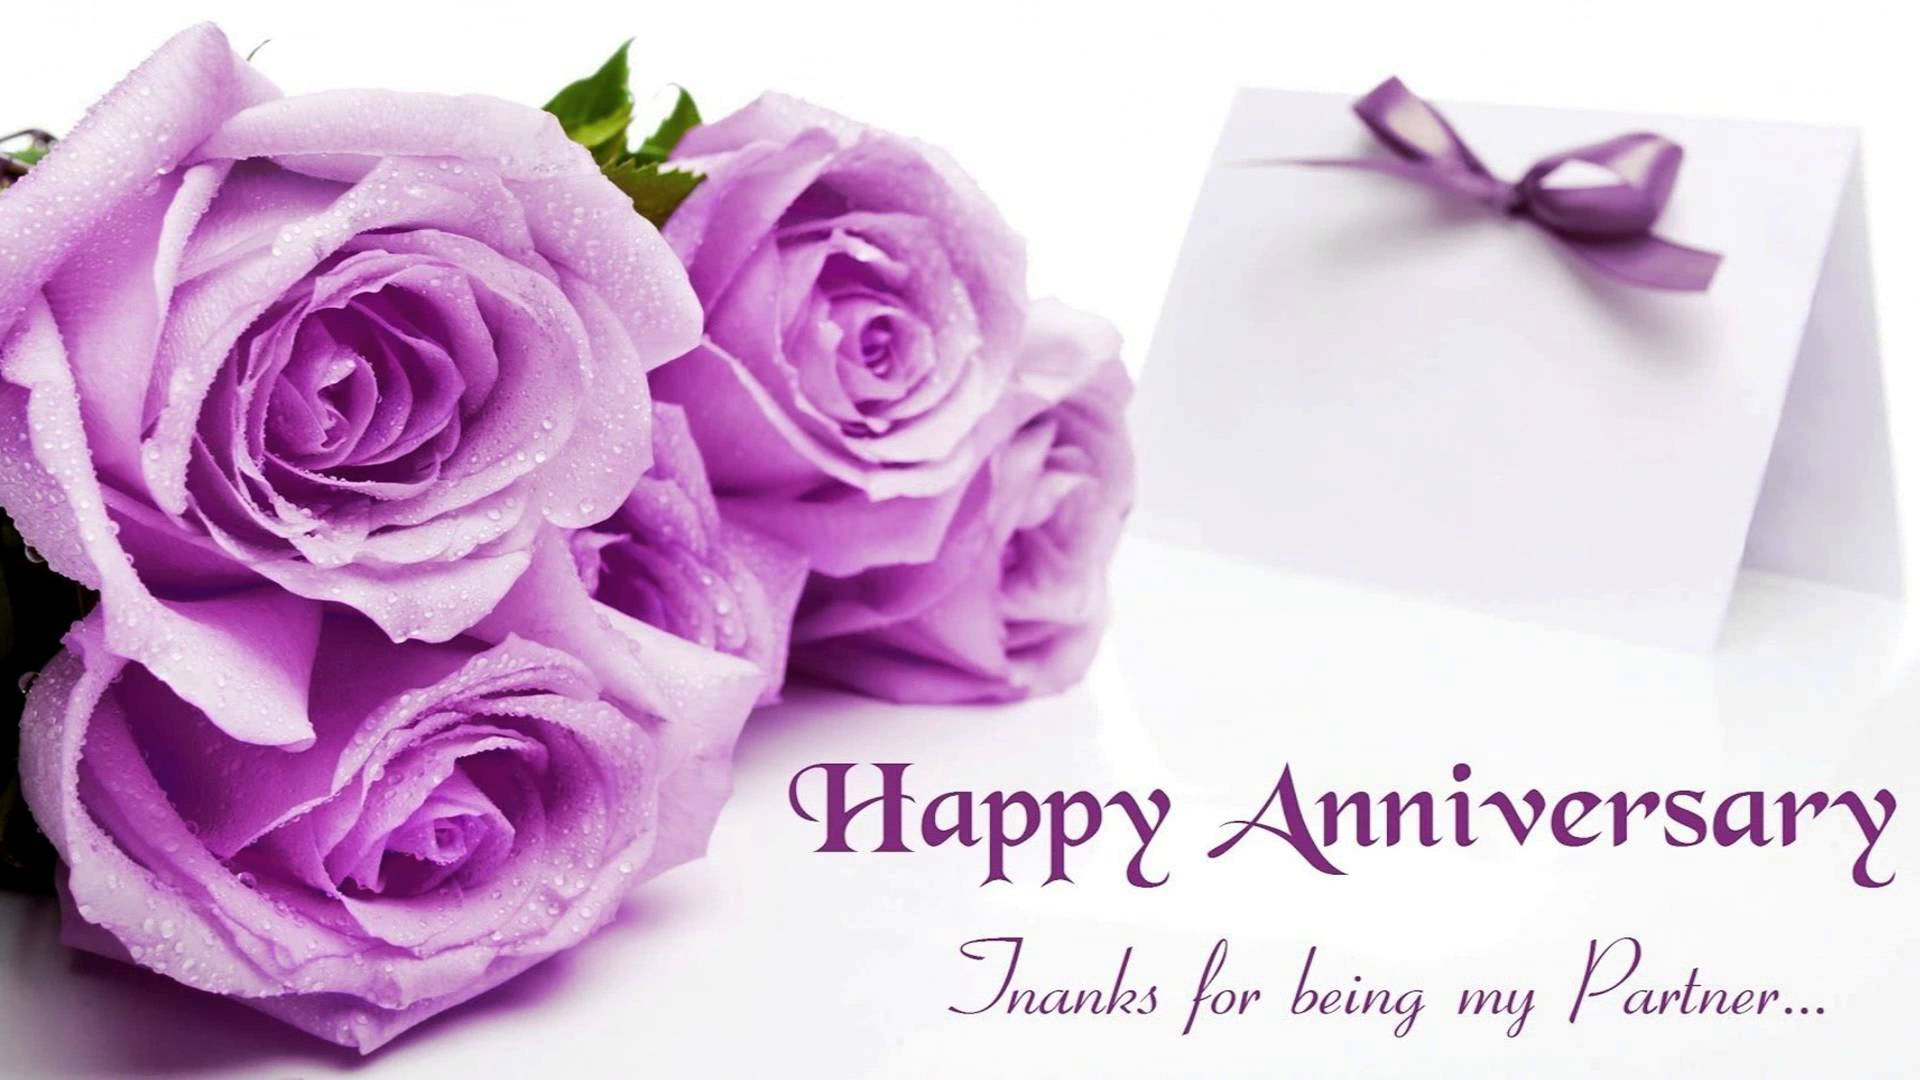 Happy Marriage Anniversary Quotes Anniversary Wishes To Brother And Sister In Law  Wishes Choice